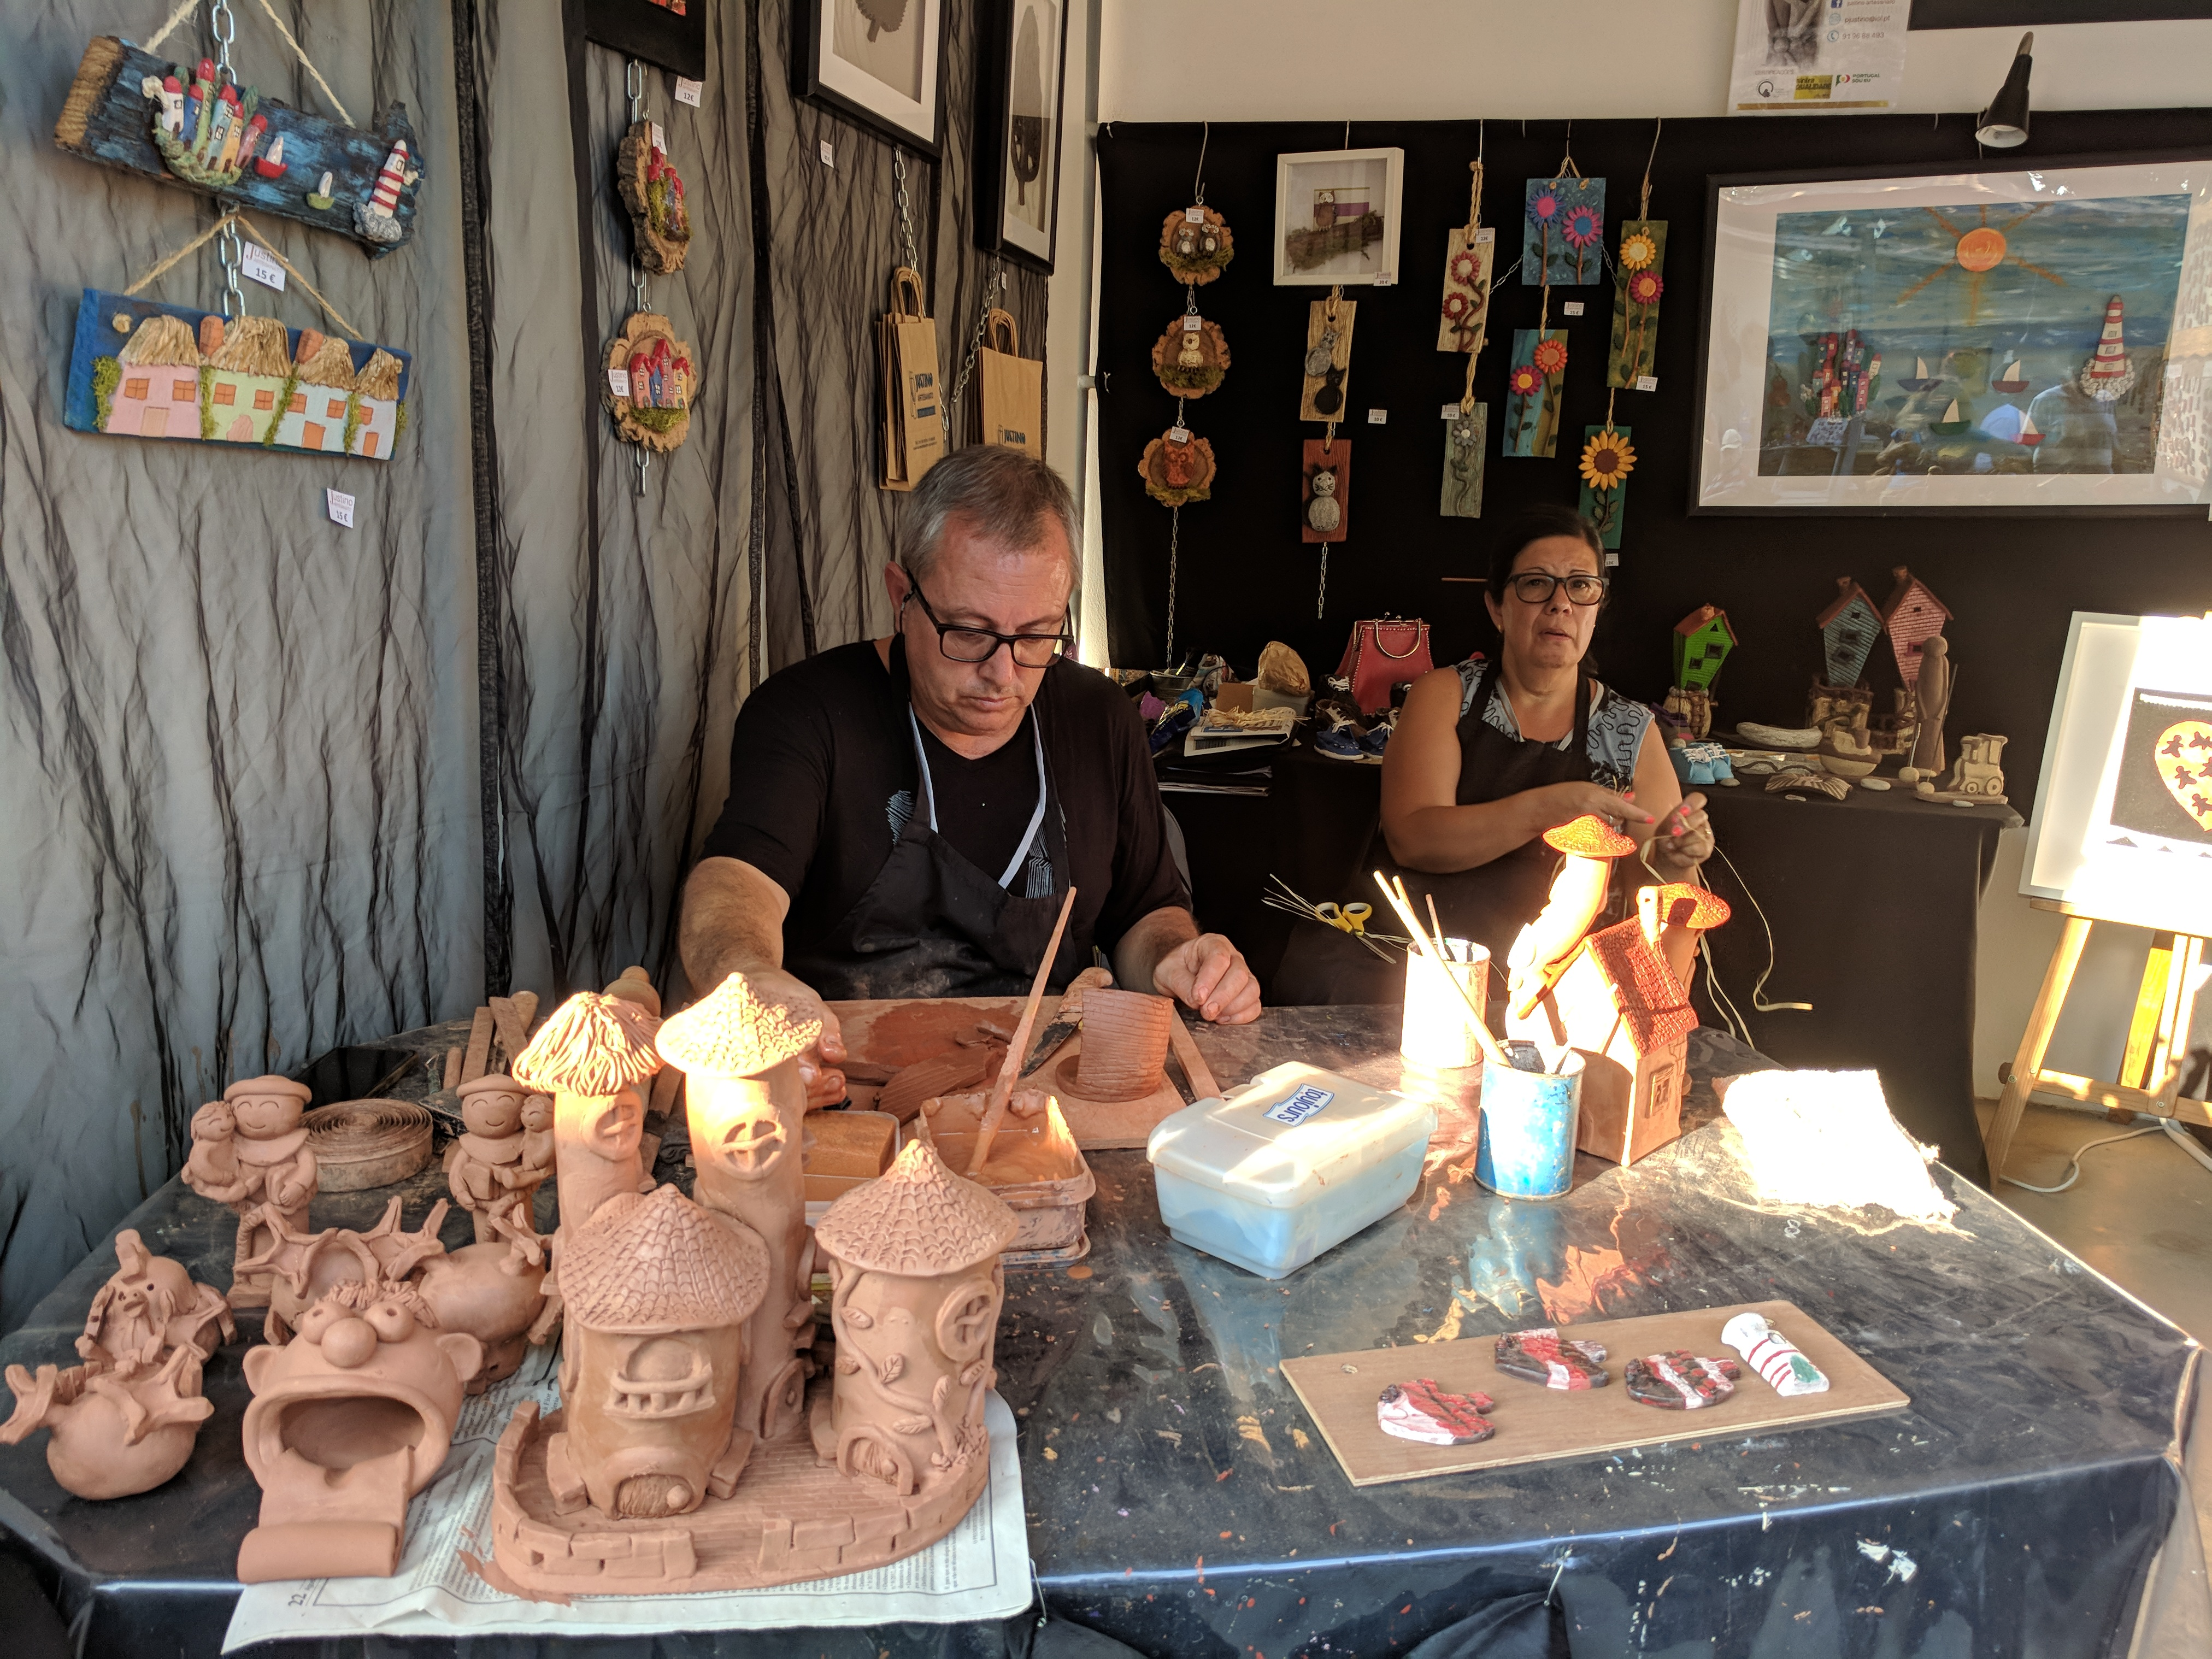 Portugal - Algarve / Fatacil (fair) in Lagoa: handicraft